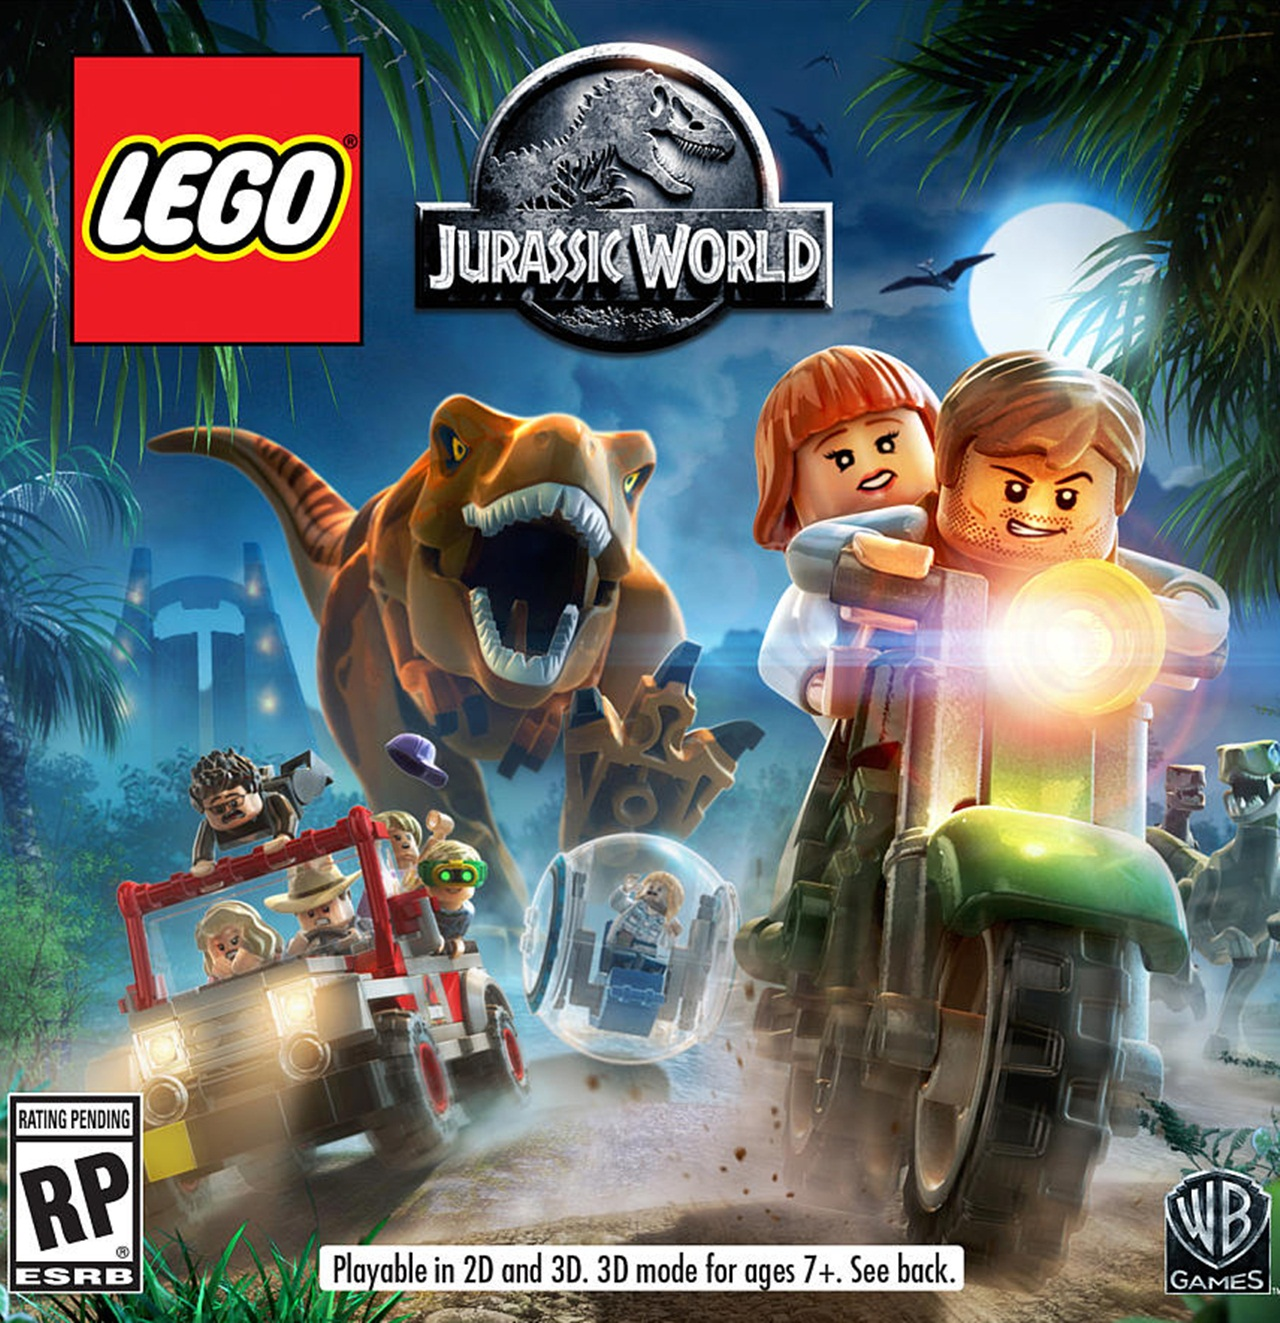 Videogame Wallpapers With Quotes Lego Jurassic World Game Trailer And Wallpapers Xcitefun Net